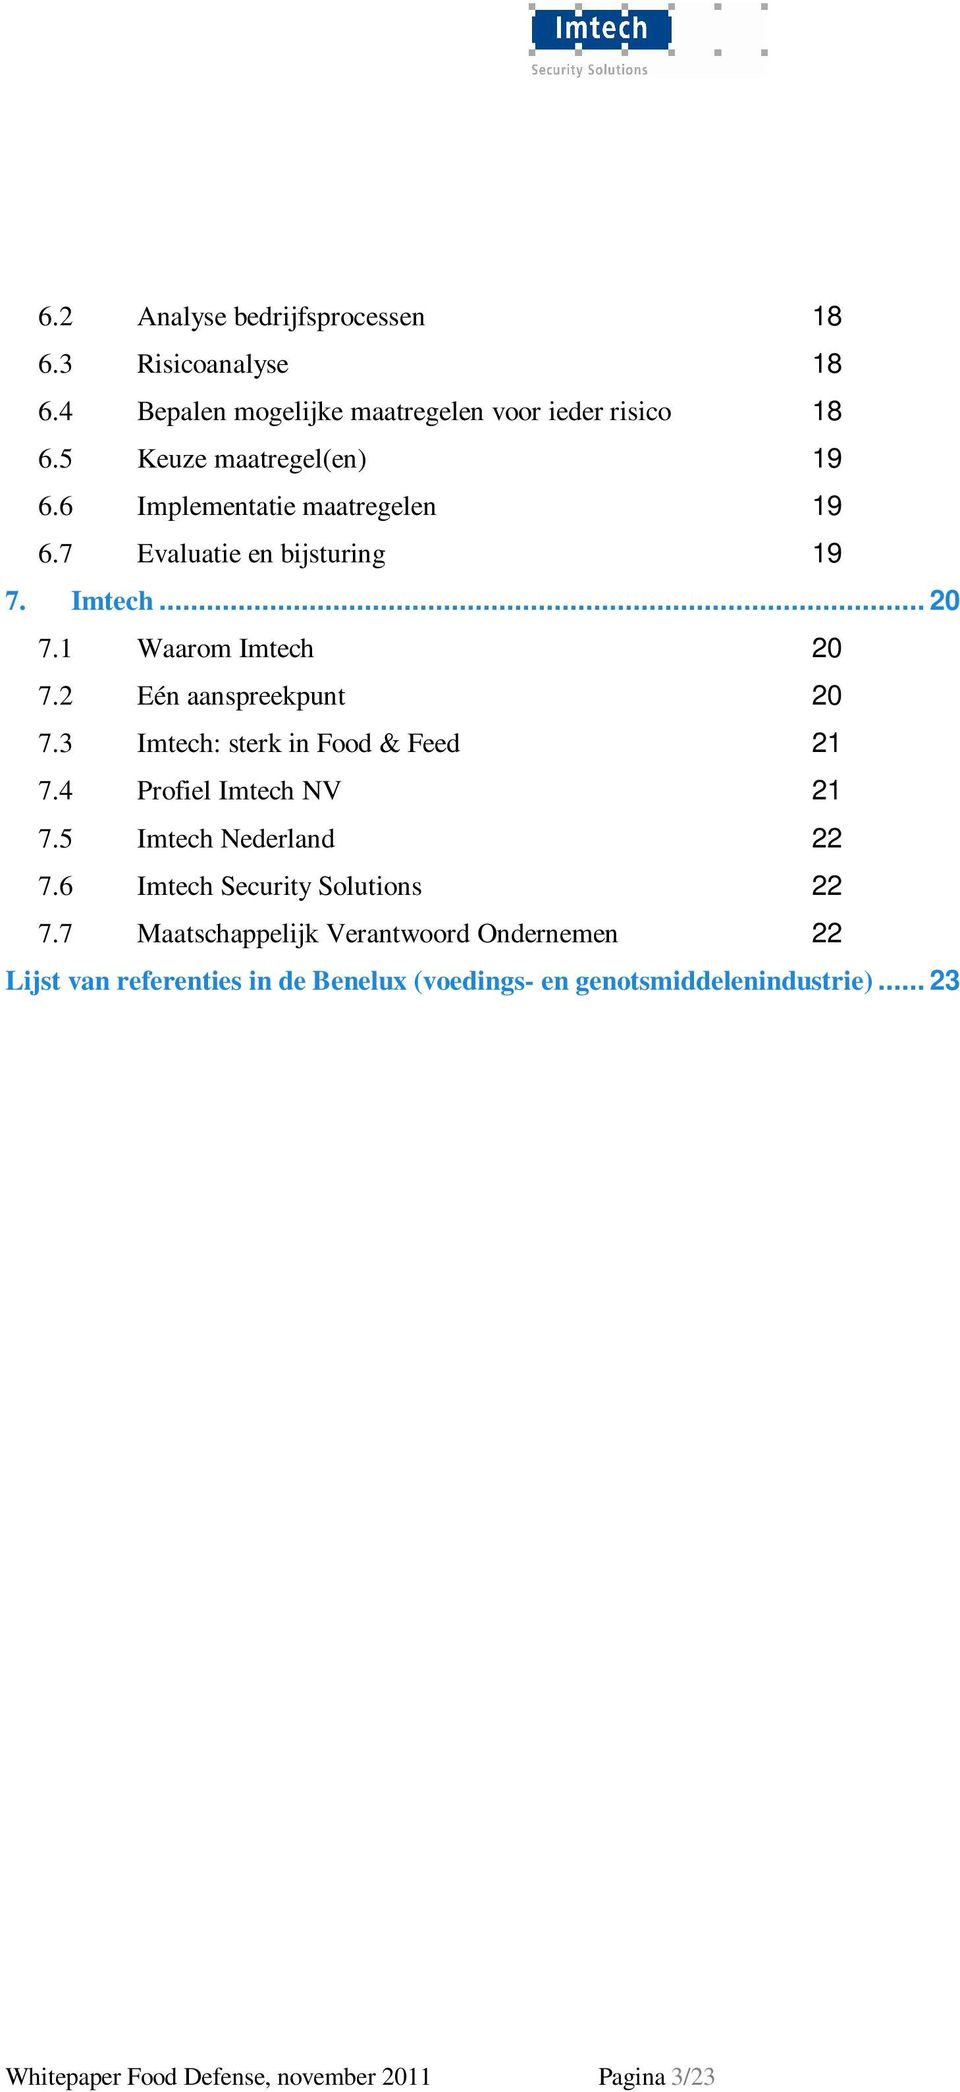 3 Imtech: sterk in Food & Feed 21 7.4 Profiel Imtech NV 21 7.5 Imtech Nederland 22 7.6 Imtech Security Solutions 22 7.